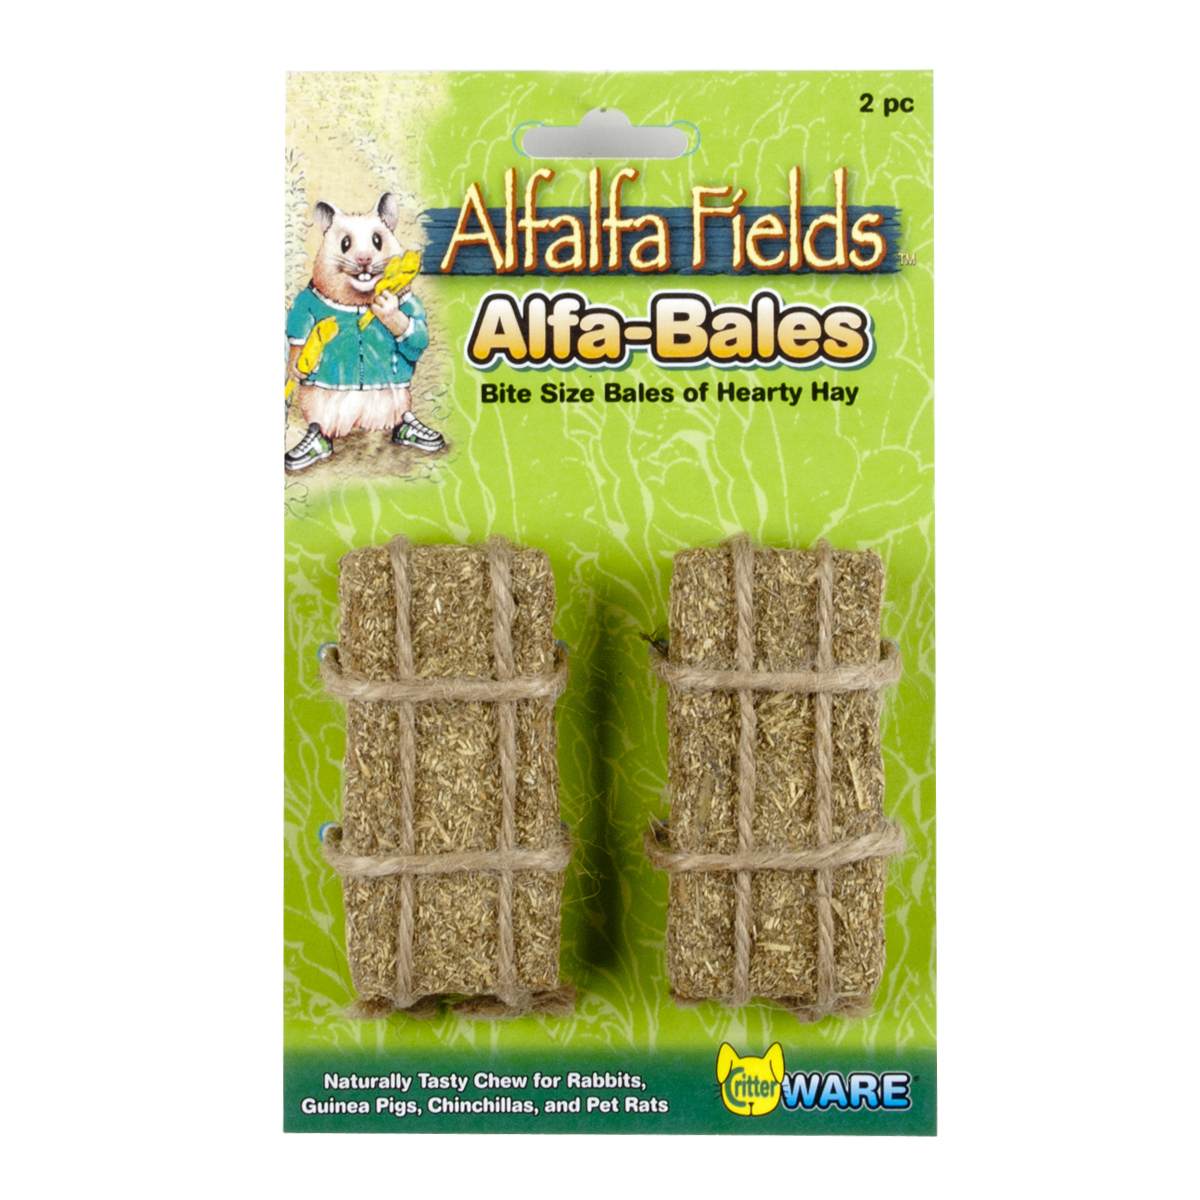 Alfalfa Fields Alfa-Bales by Ware Mfg.